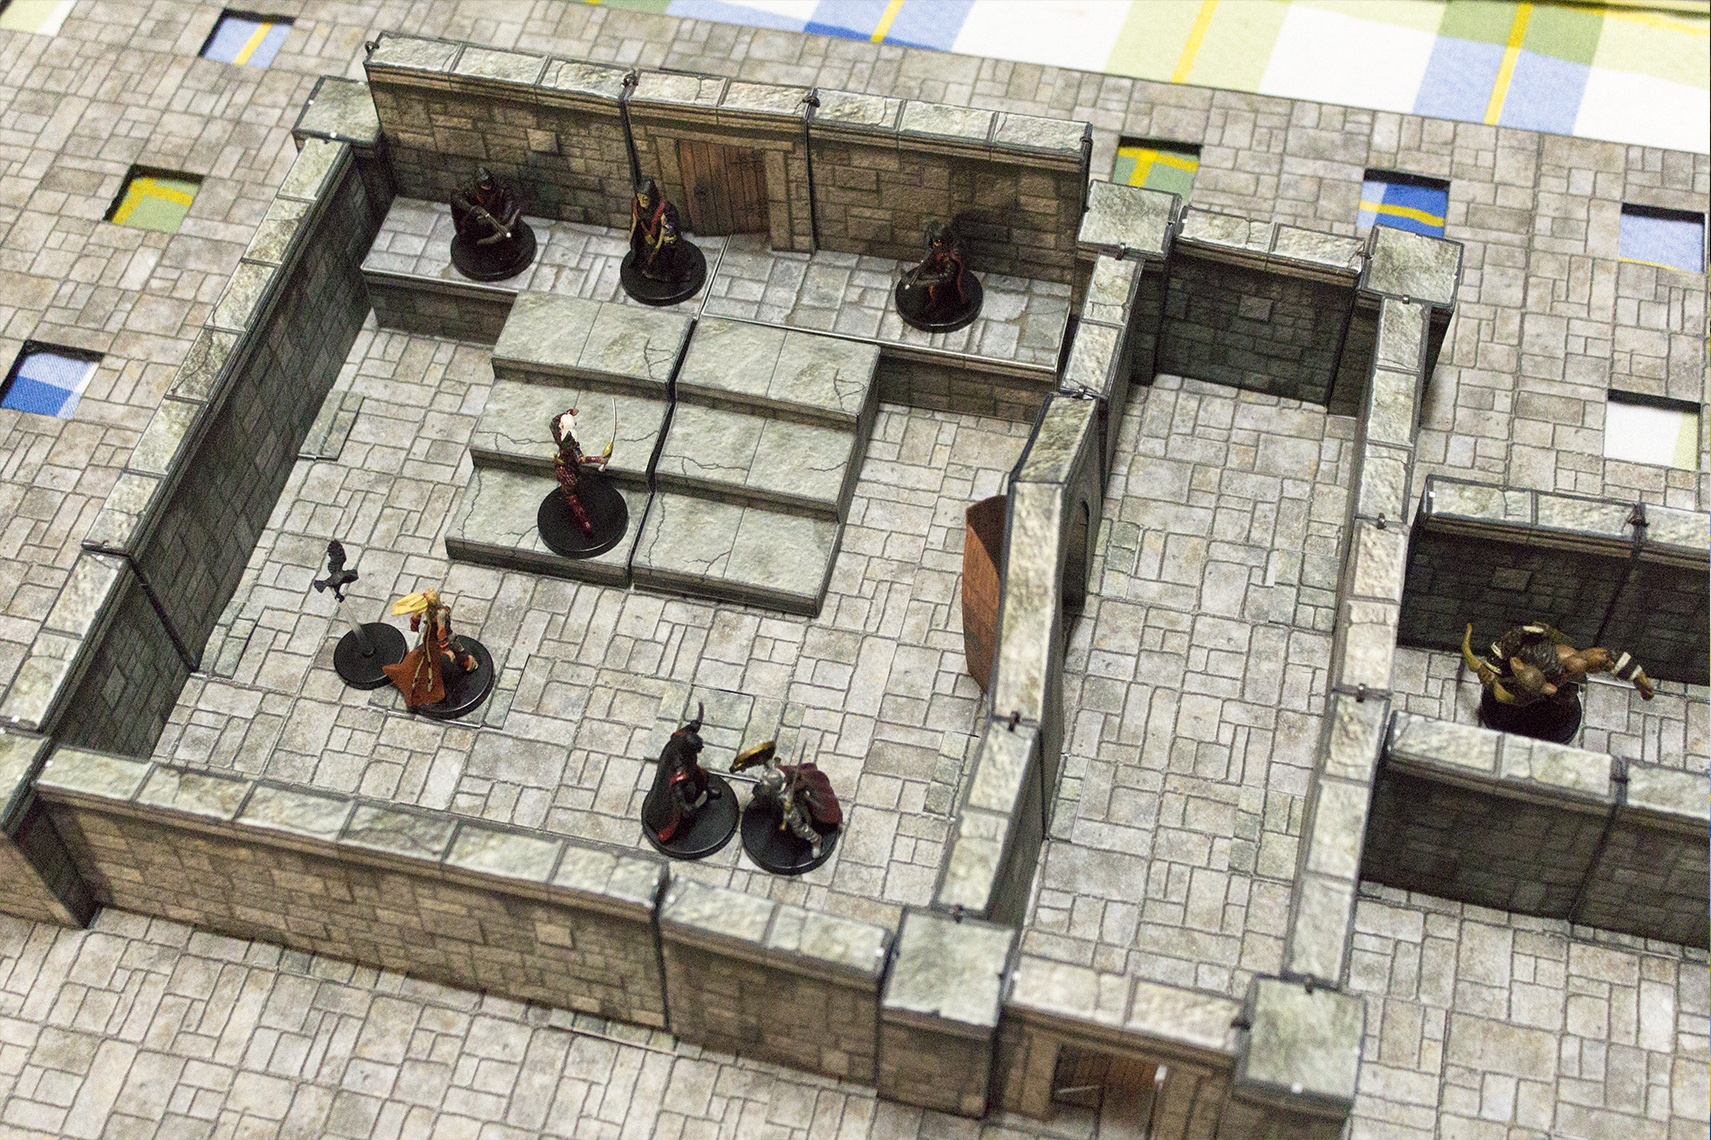 A simple dungeon layout